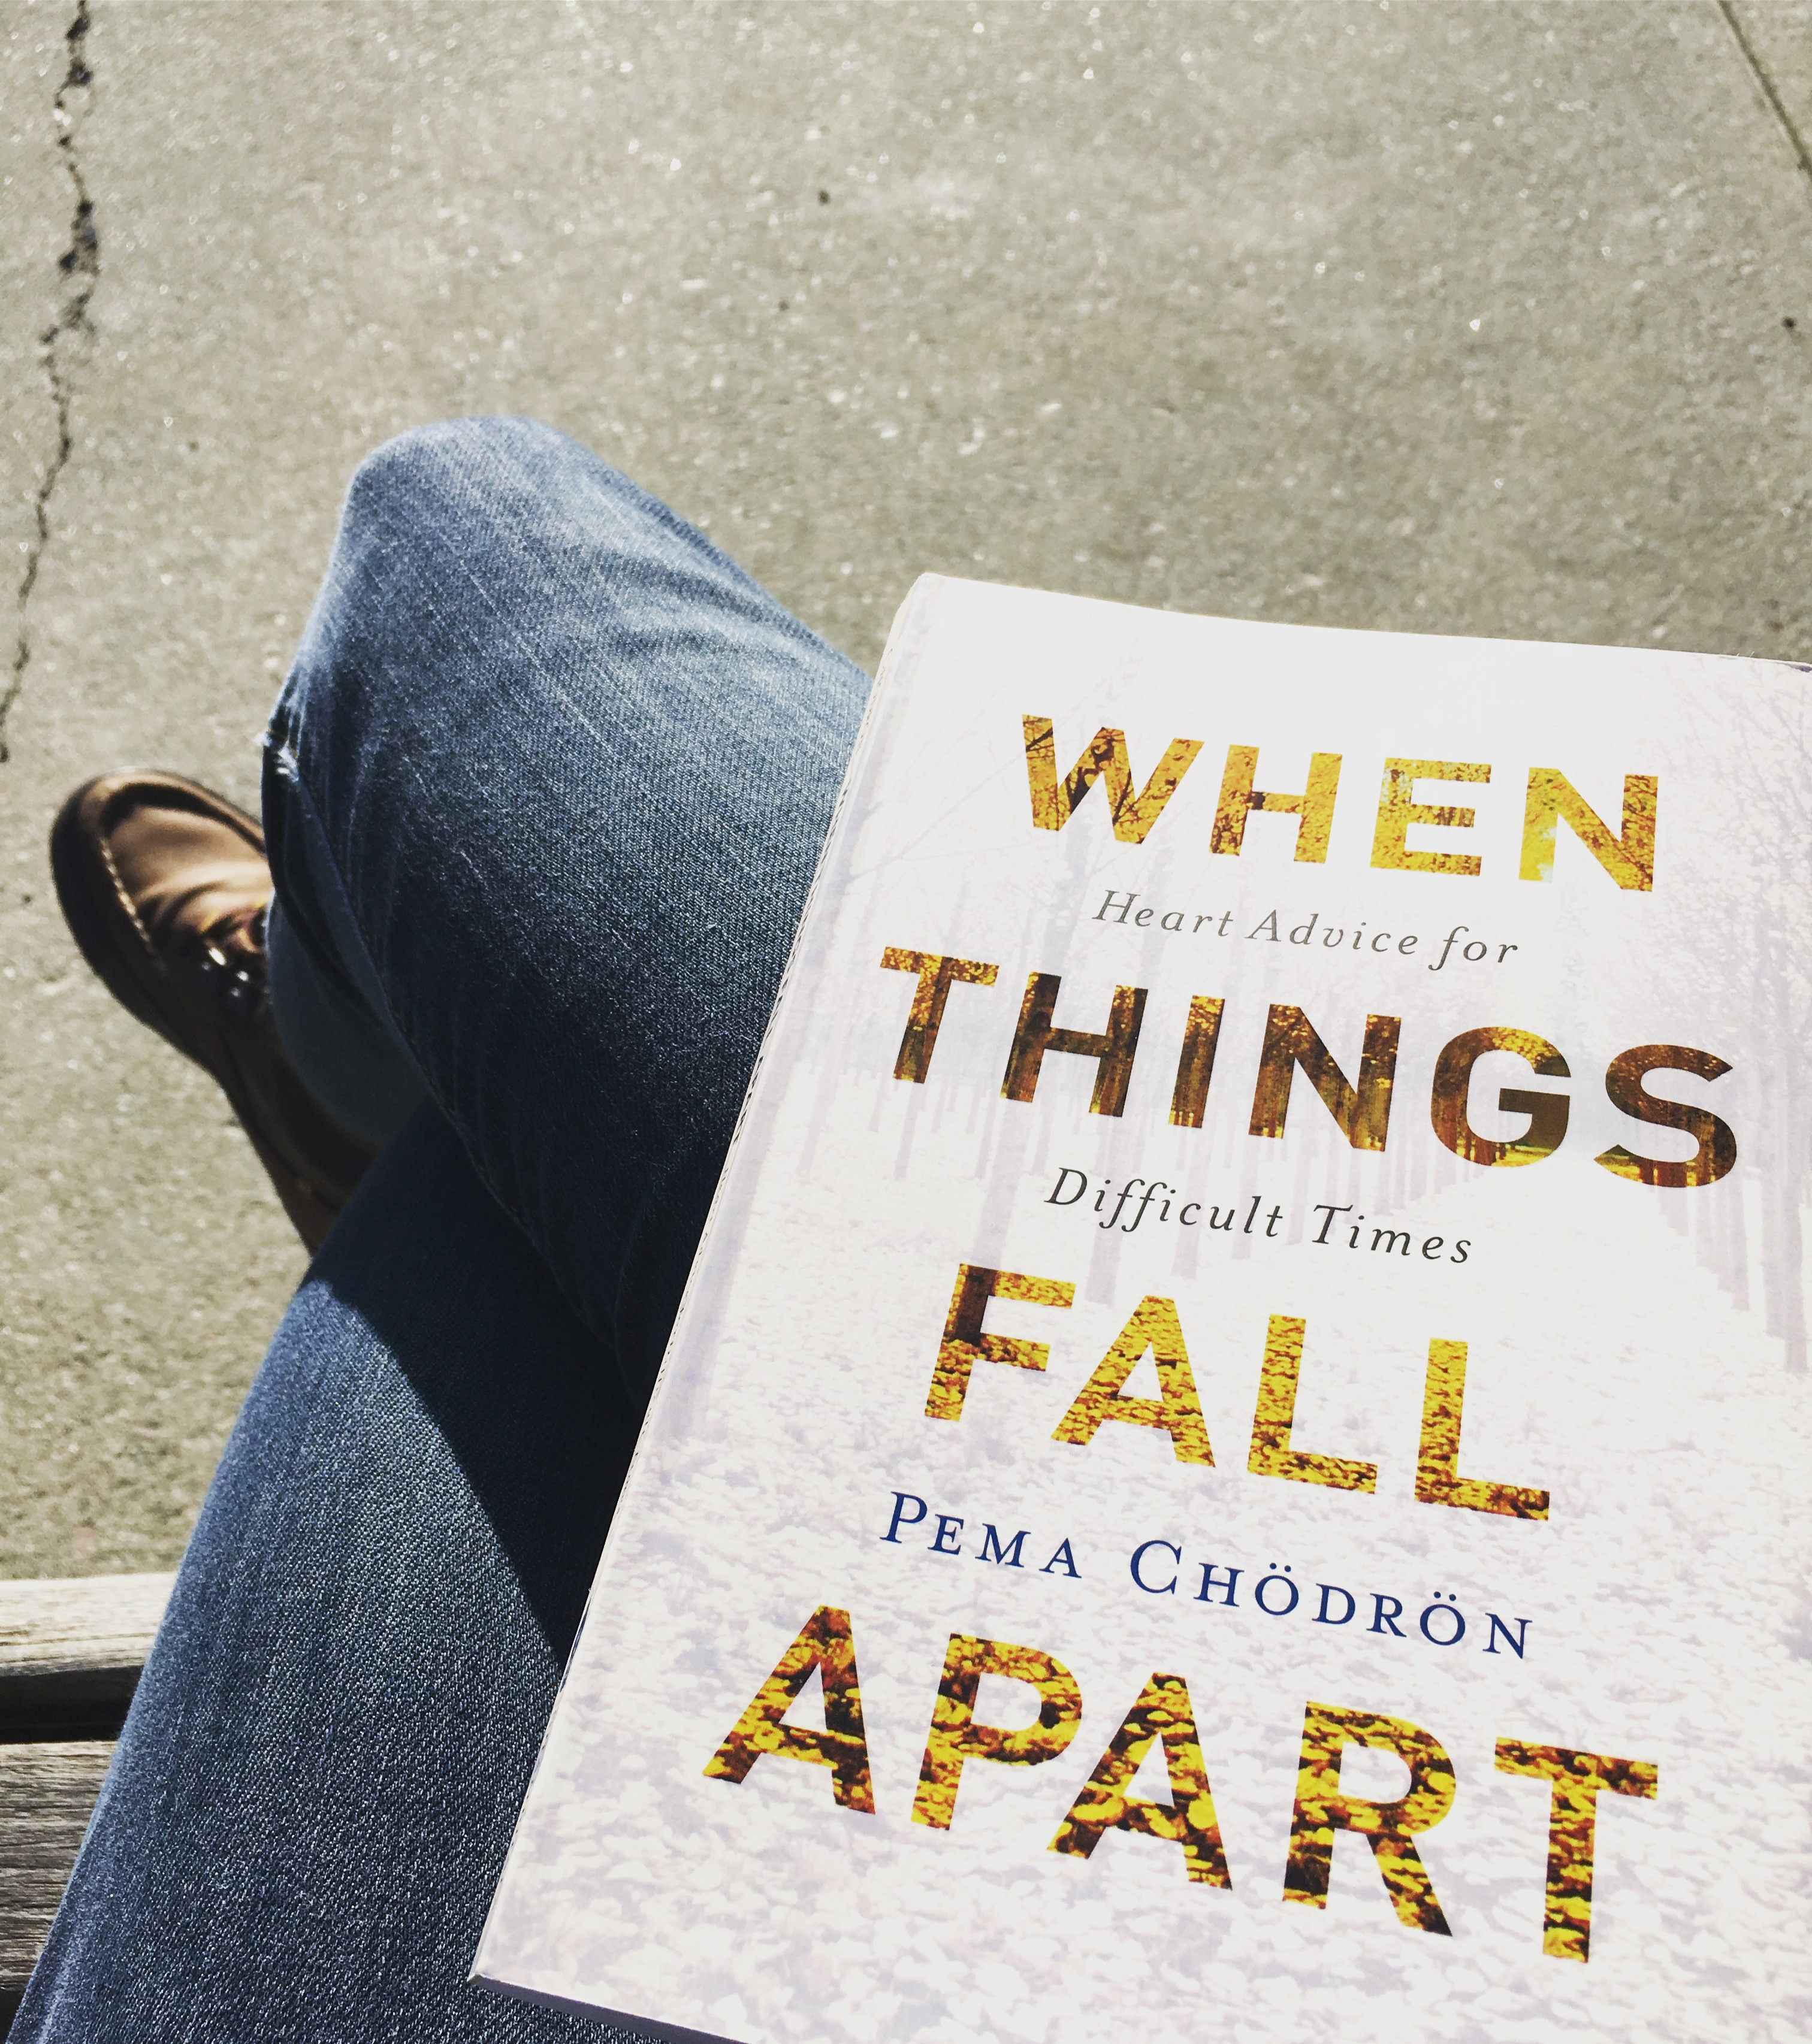 things fall apart point of view